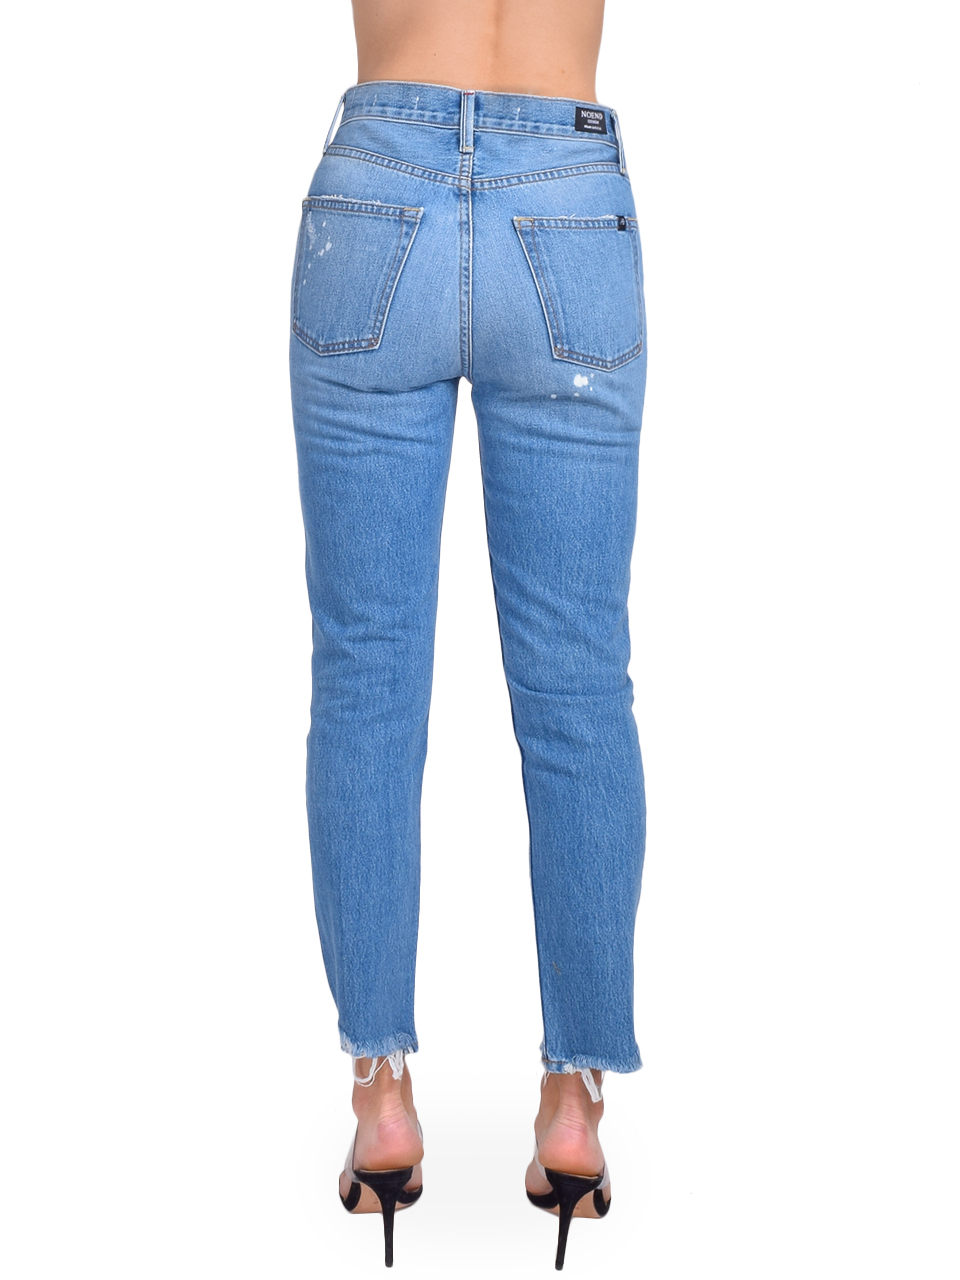 NO END Newport Slim Straight Cropped Jean in Beastie Back View